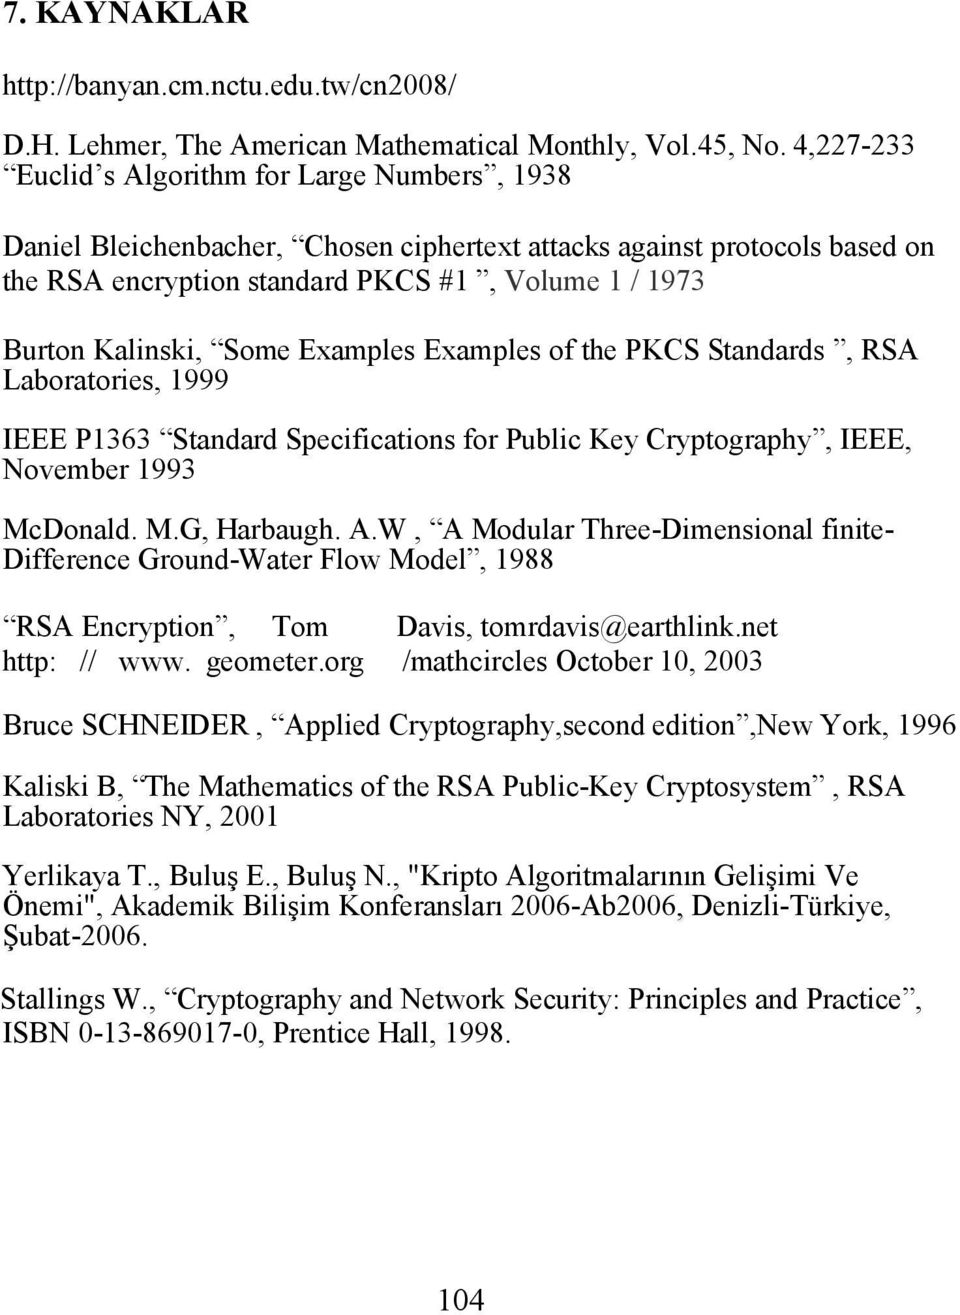 Some Examples Examples of the PKCS Standards, RSA Laboratories, 1999 IEEE P1363 Standard Specifications for Public Key Cryptography, IEEE, November 1993 McDonald. M.G, Harbaugh. A.